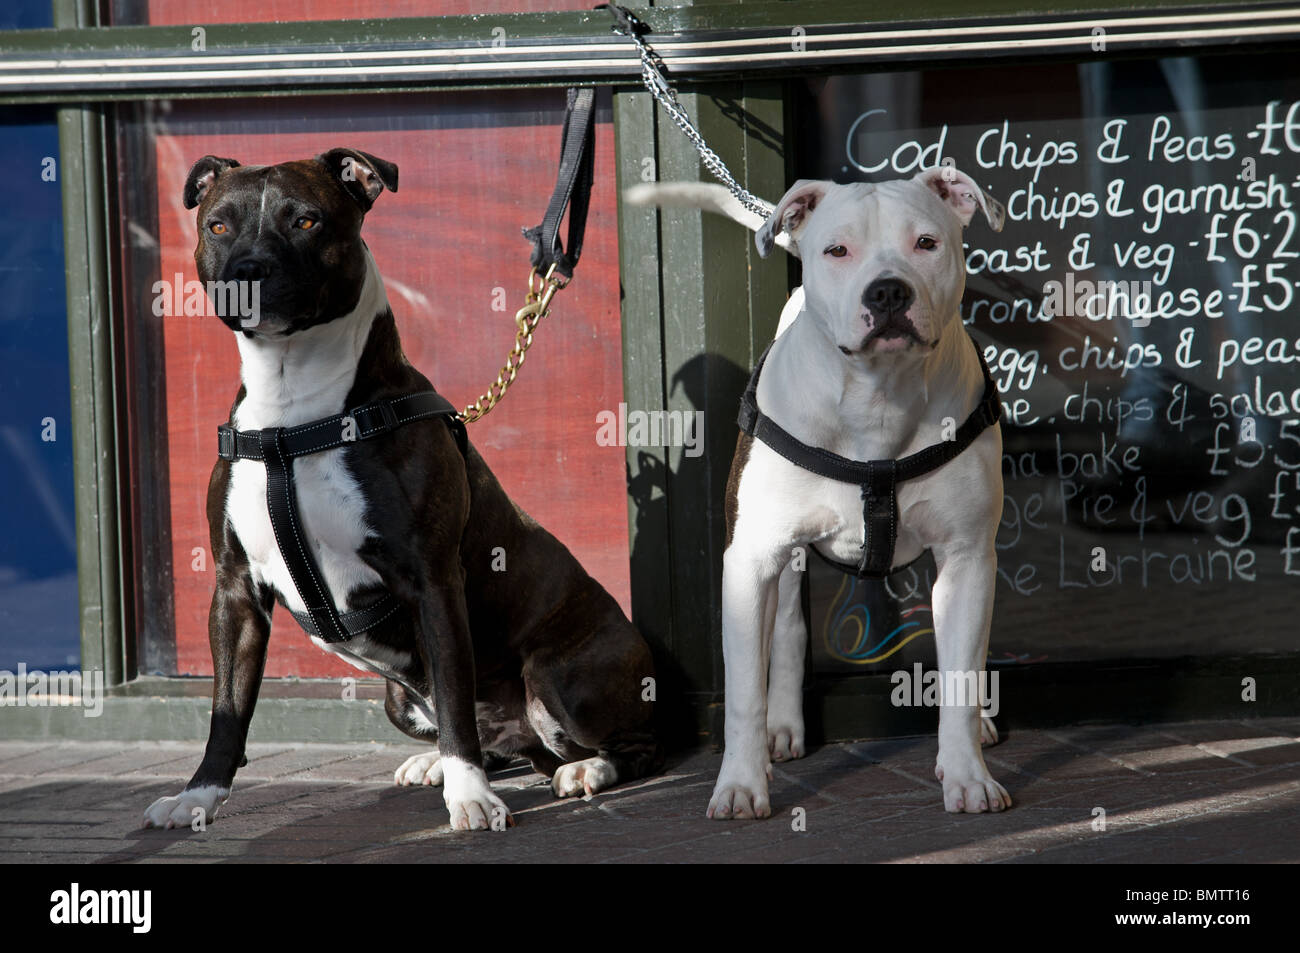 Staffordshire bull terriers (father and son) tired-up outside a pub in Felixstowe, Suffolk, UK. - Stock Image